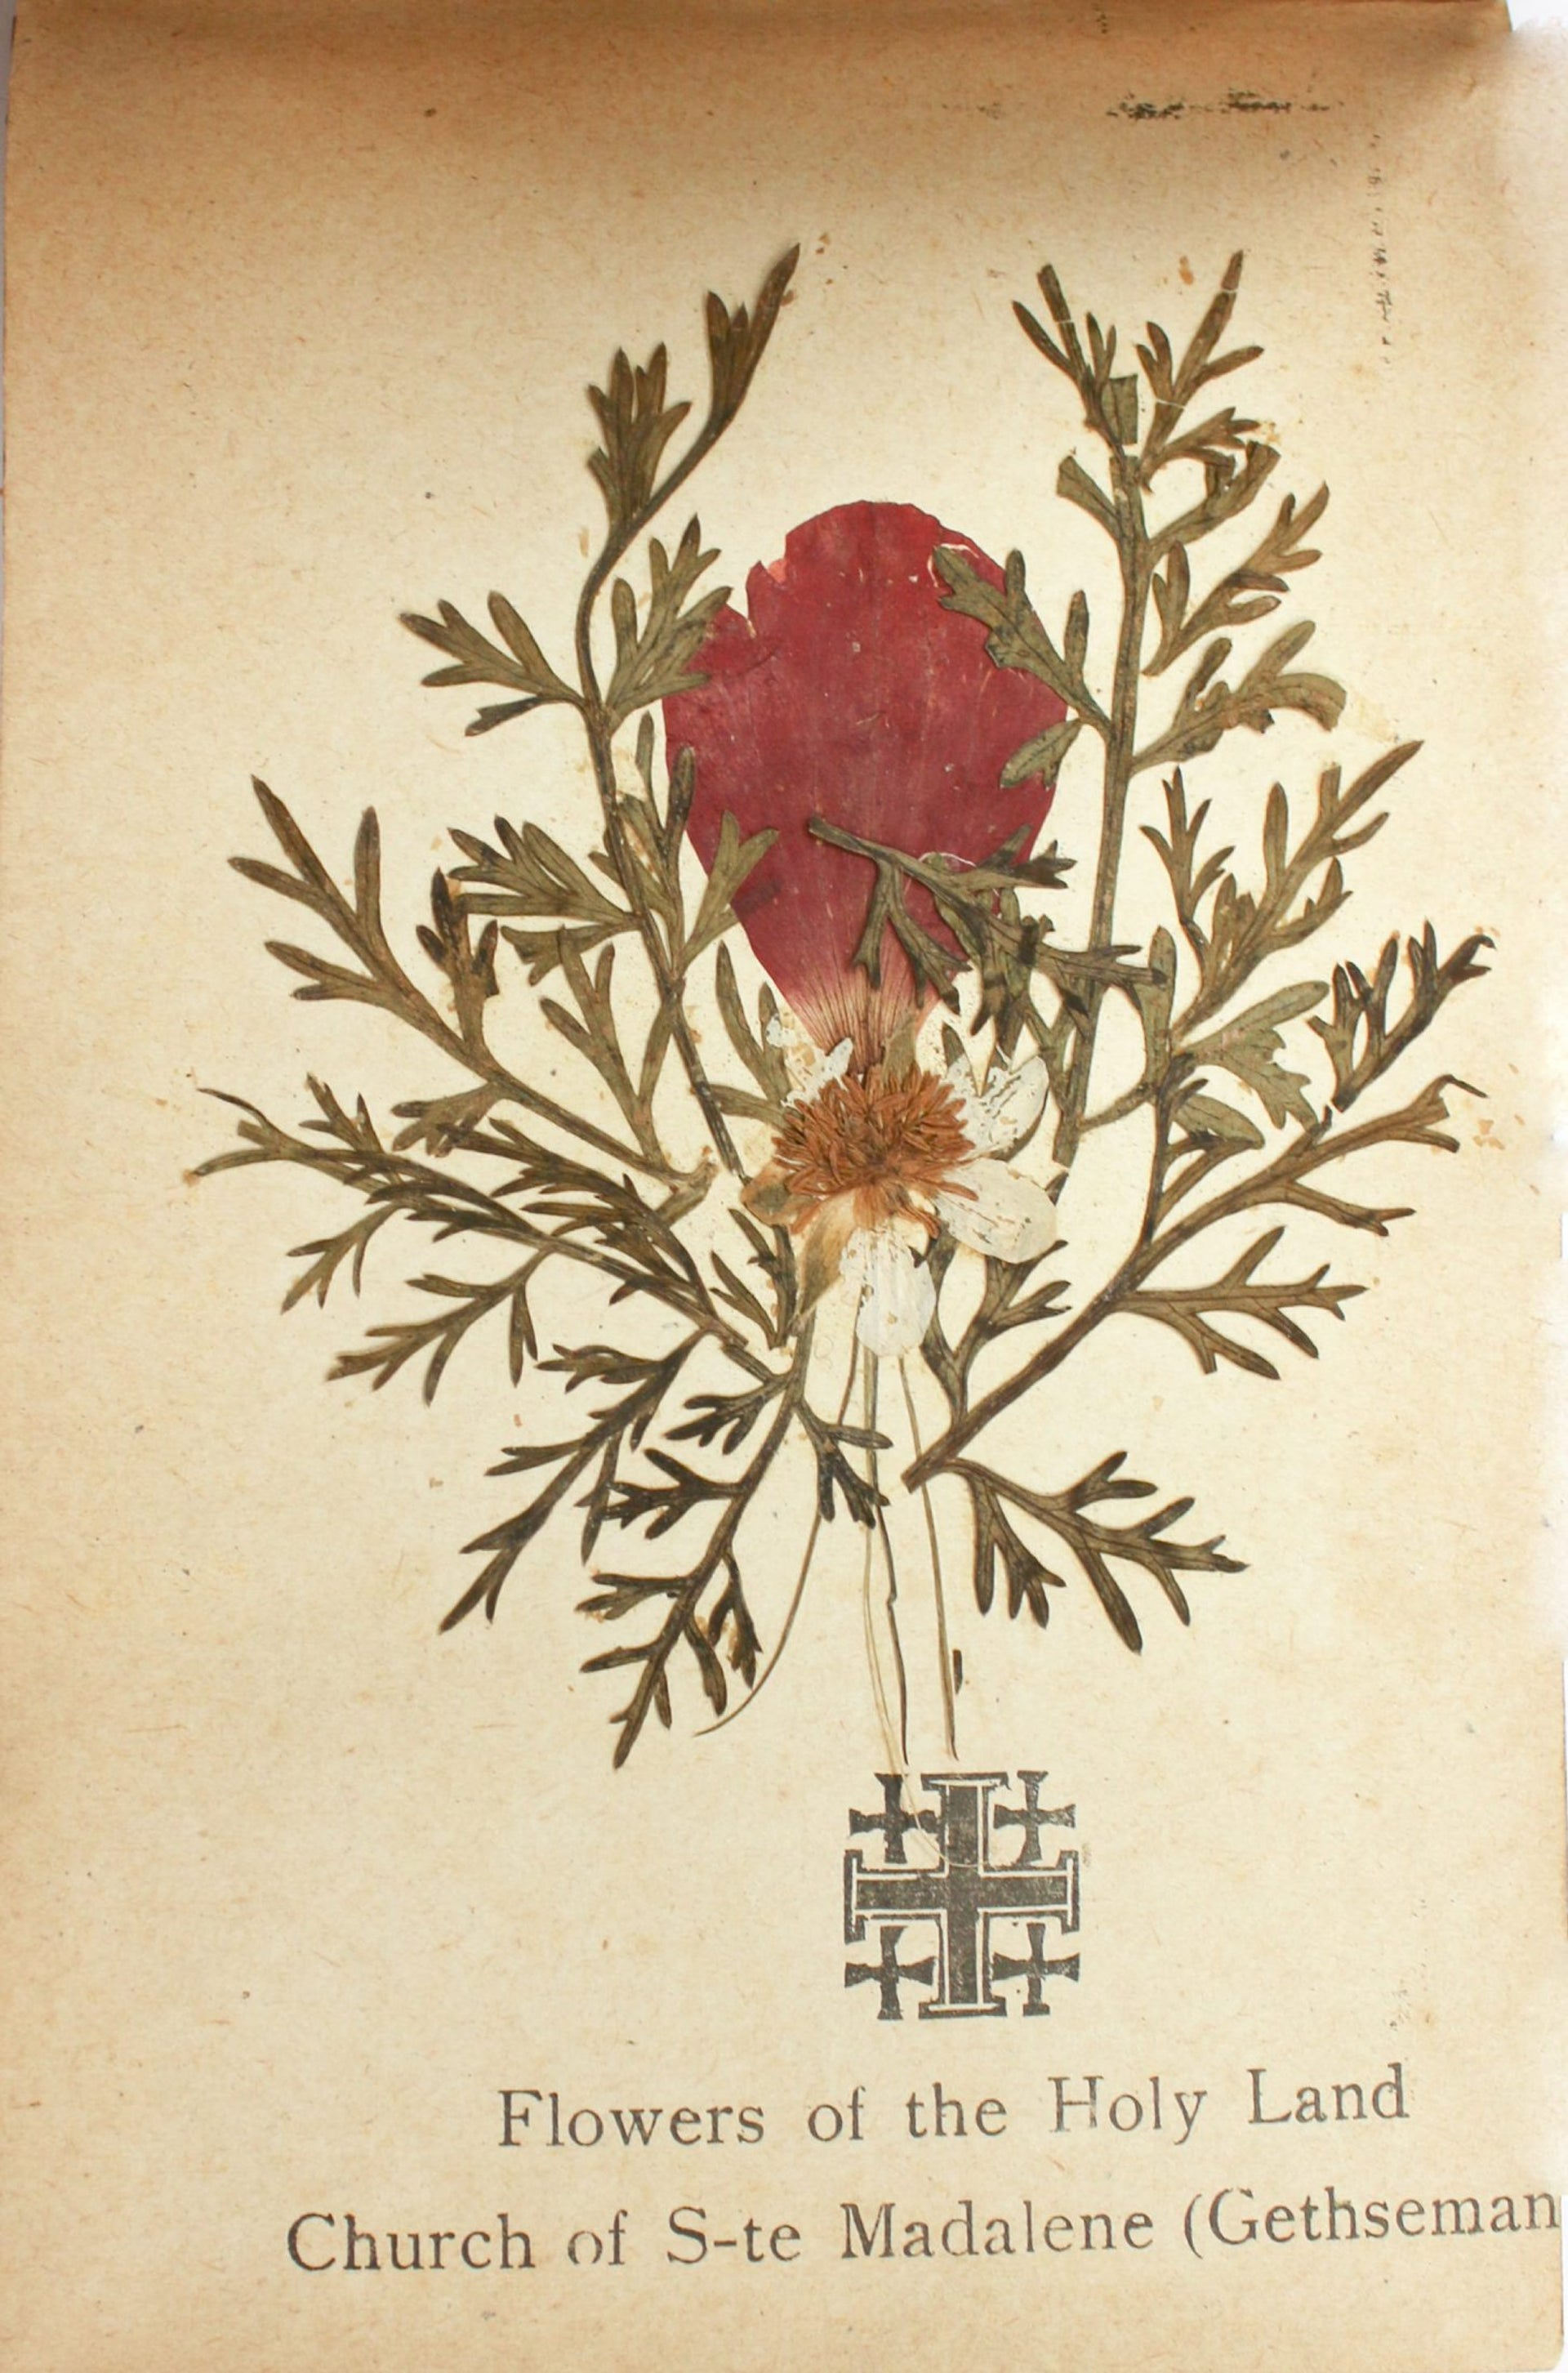 An album with dried flowers sold as a souvenir to the British soldiers.